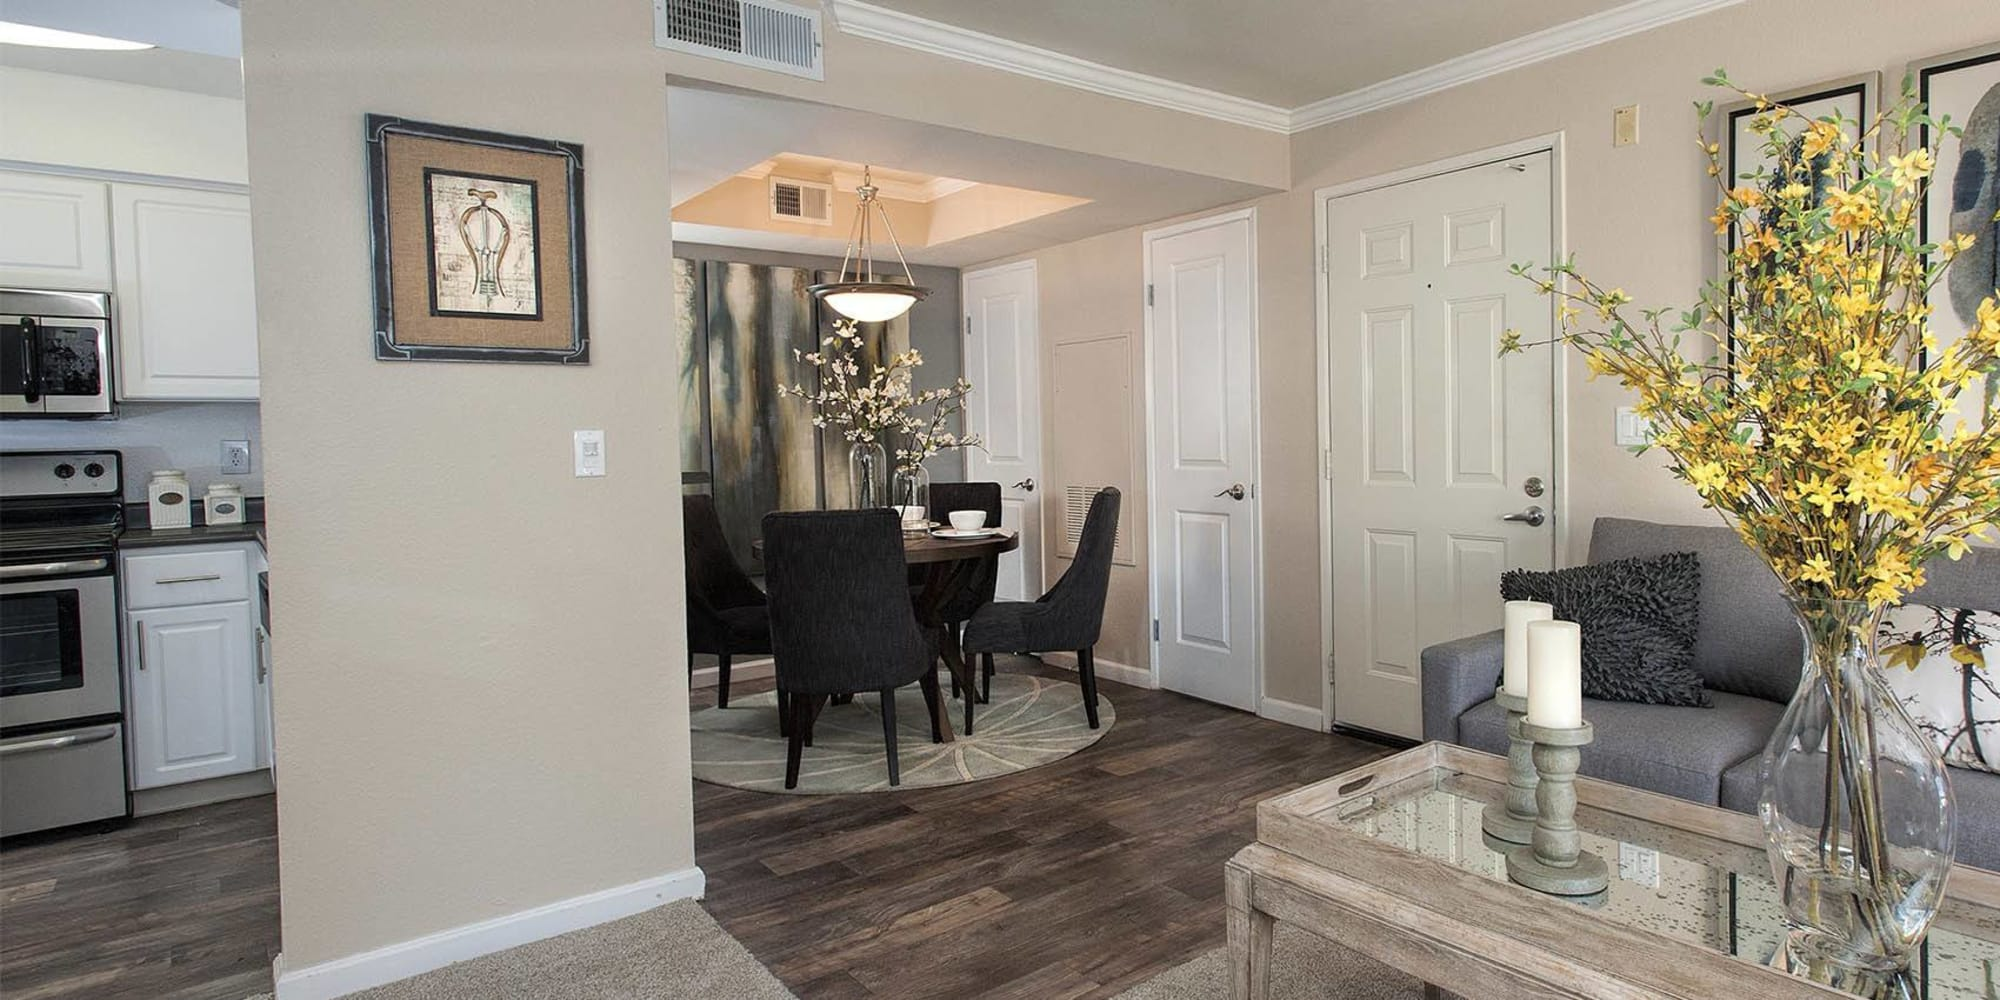 Luxury Mill Springs Park Apartment Homes in Livermore, California